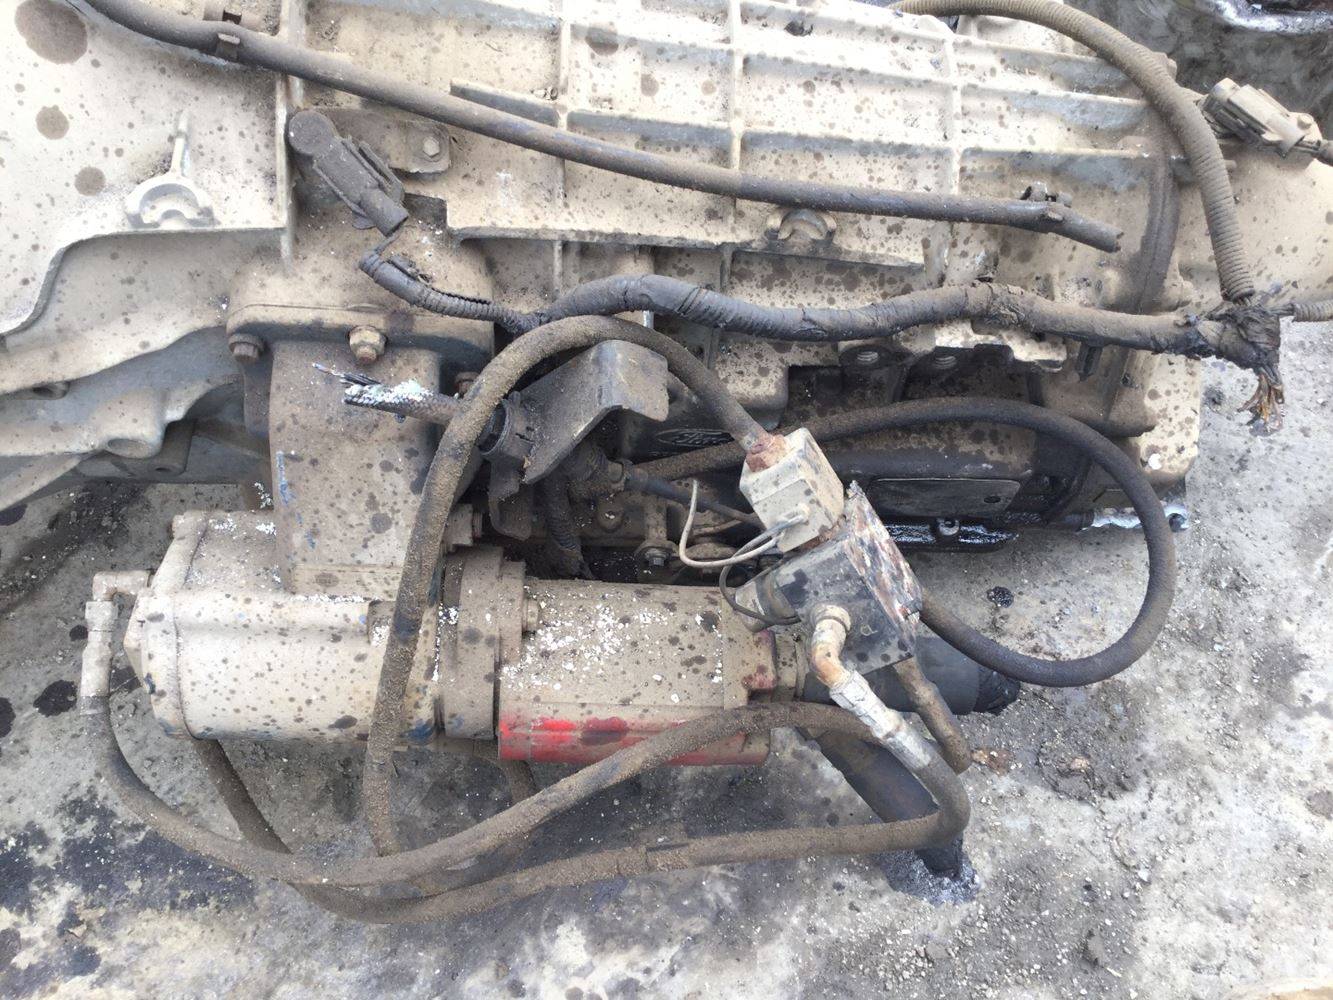 1999 Ford 4r100 Stock T Salvage 1540 Fotm 2059 E Tpi Transmission Wiring 29 March 2018 Image Subject To Change